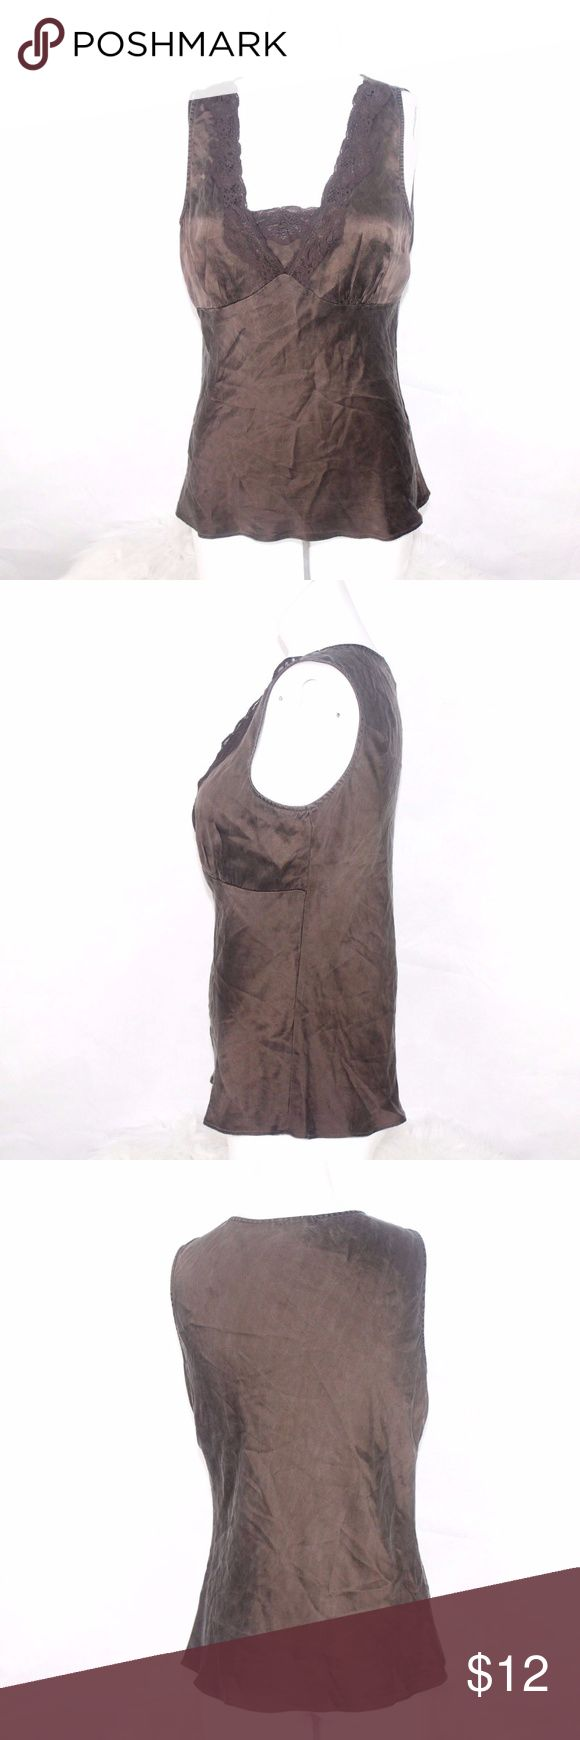 BOB MACKIE STUDIO Womens Brown Cami Silk Lace Tank BOB MACKIE STUDIO Womens Brown Cami Silk Lace Tank Cami Sz 10 E 100% Silk Bust 20 1/2 Inches Length 24 Inches Bob Mackie Tops Tank Tops